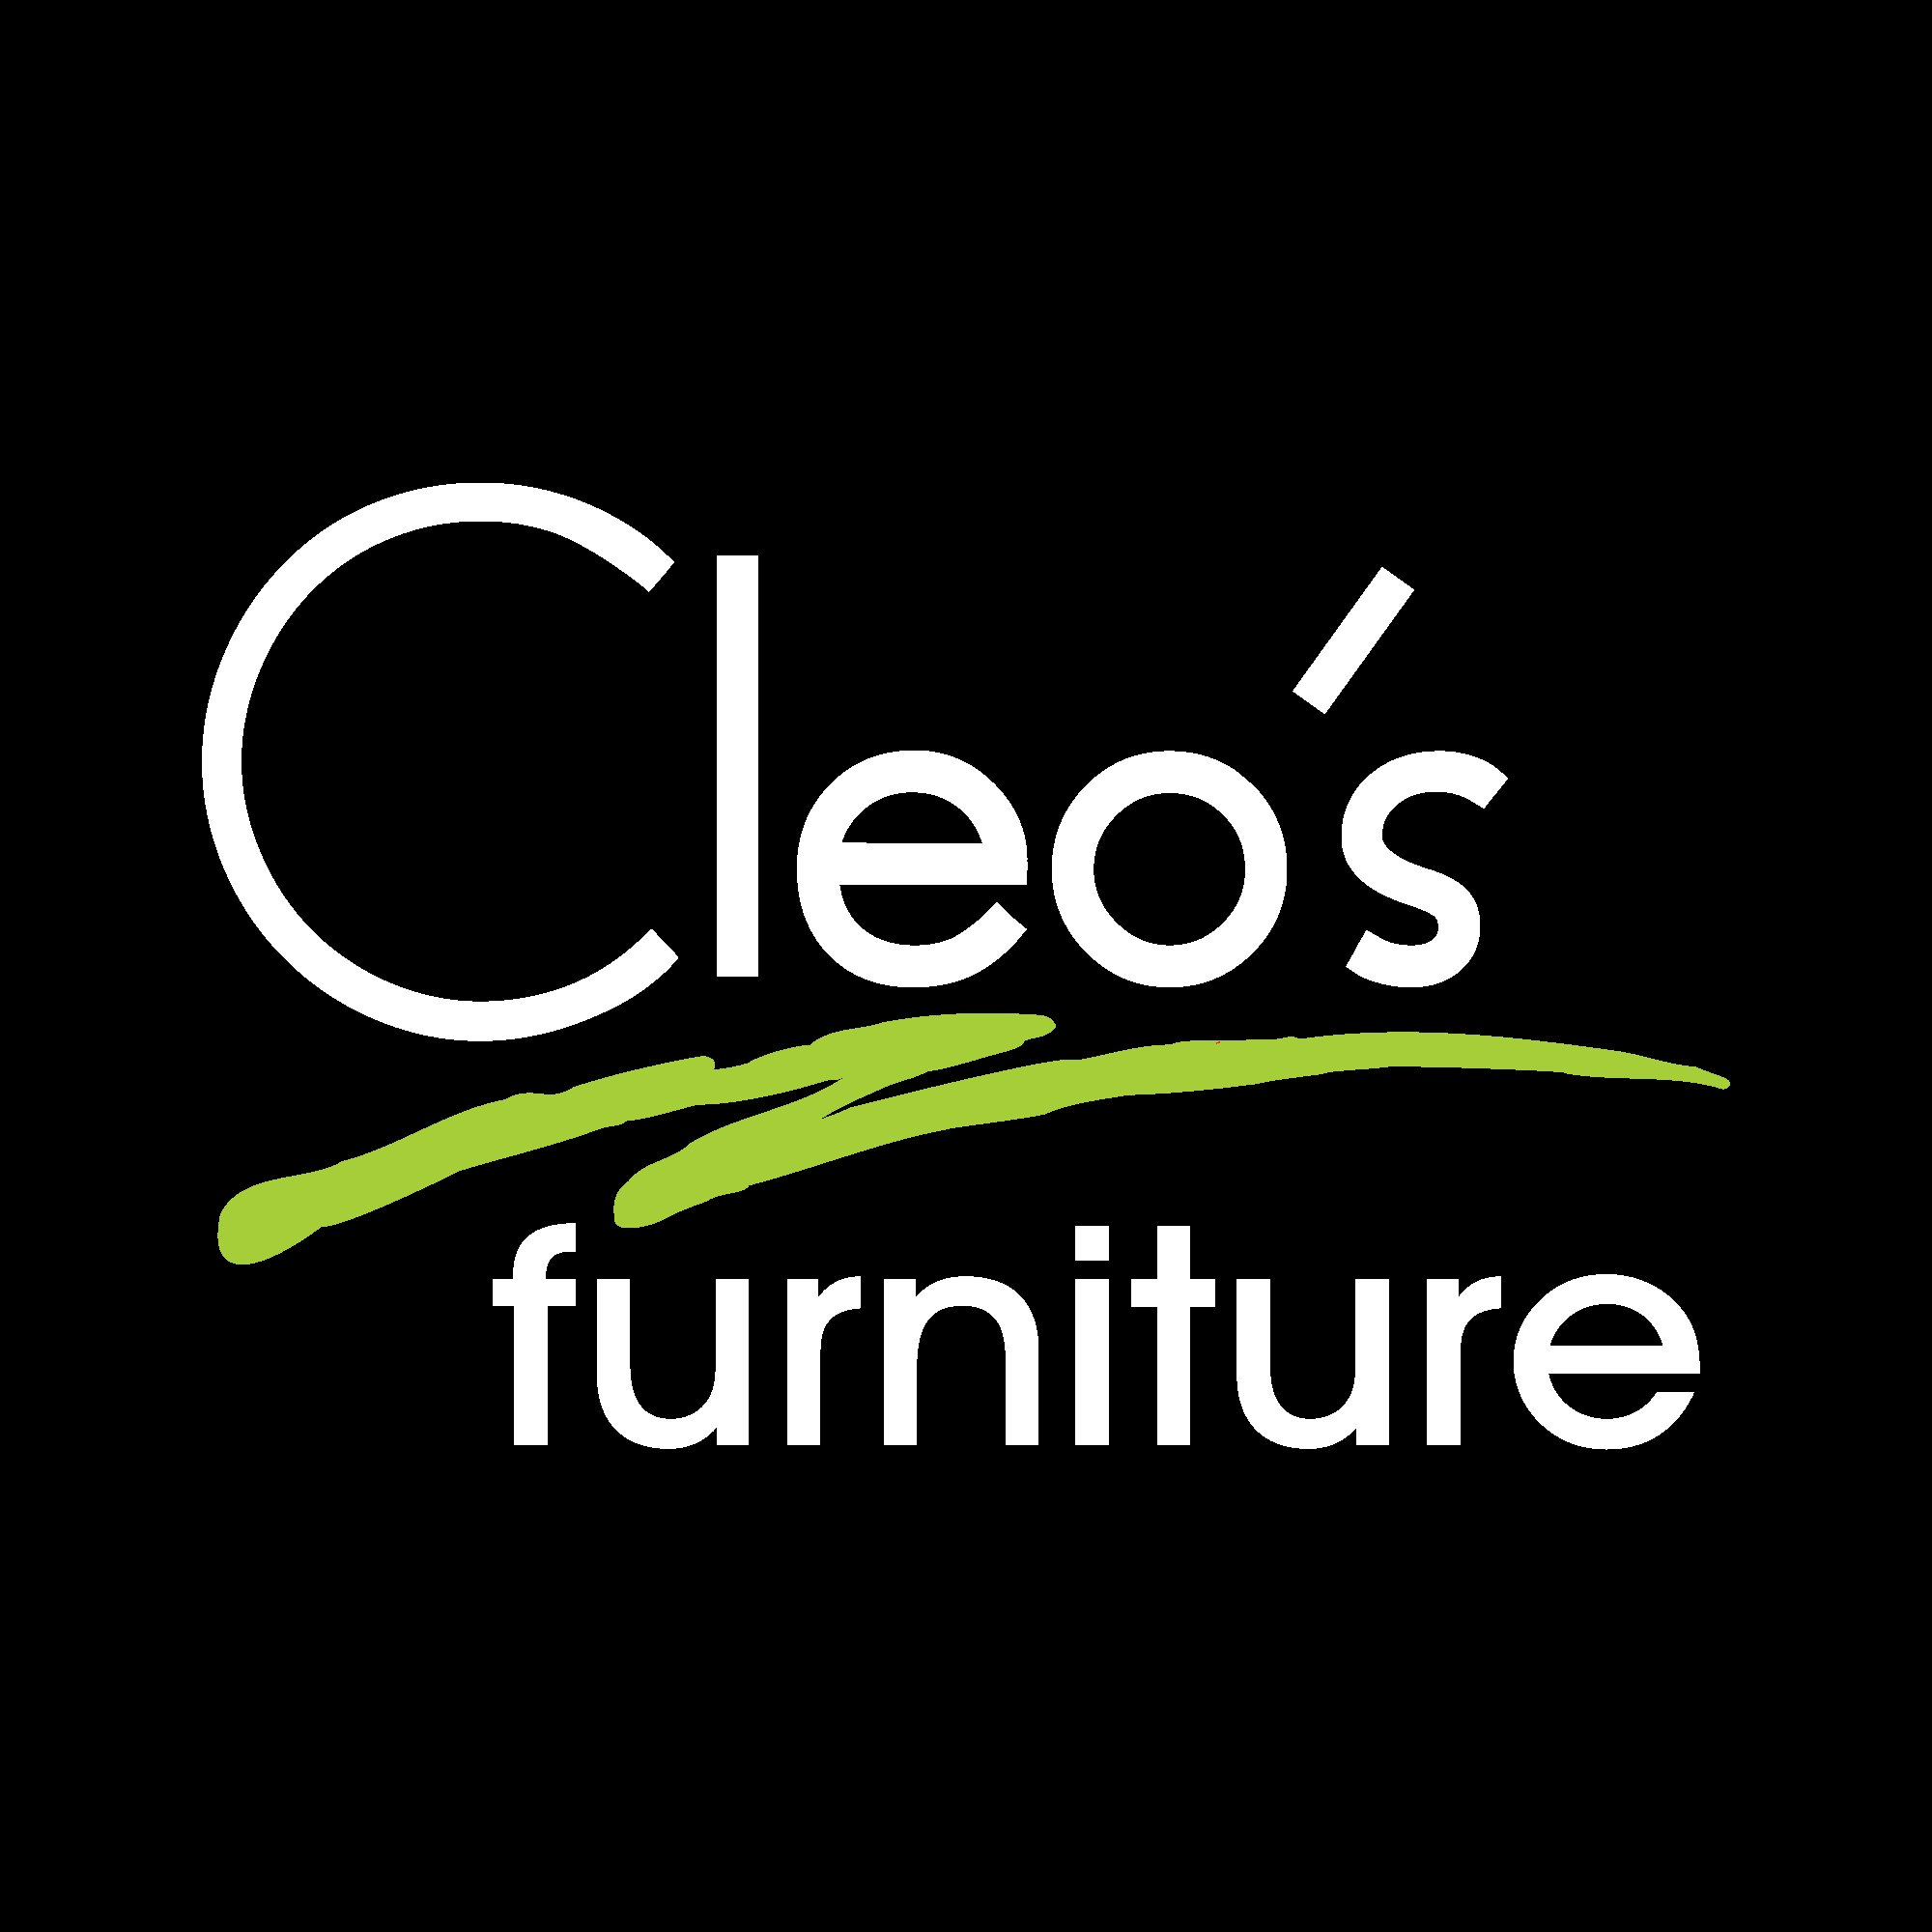 Cleo S Furniture Cleosfurniture Twitter